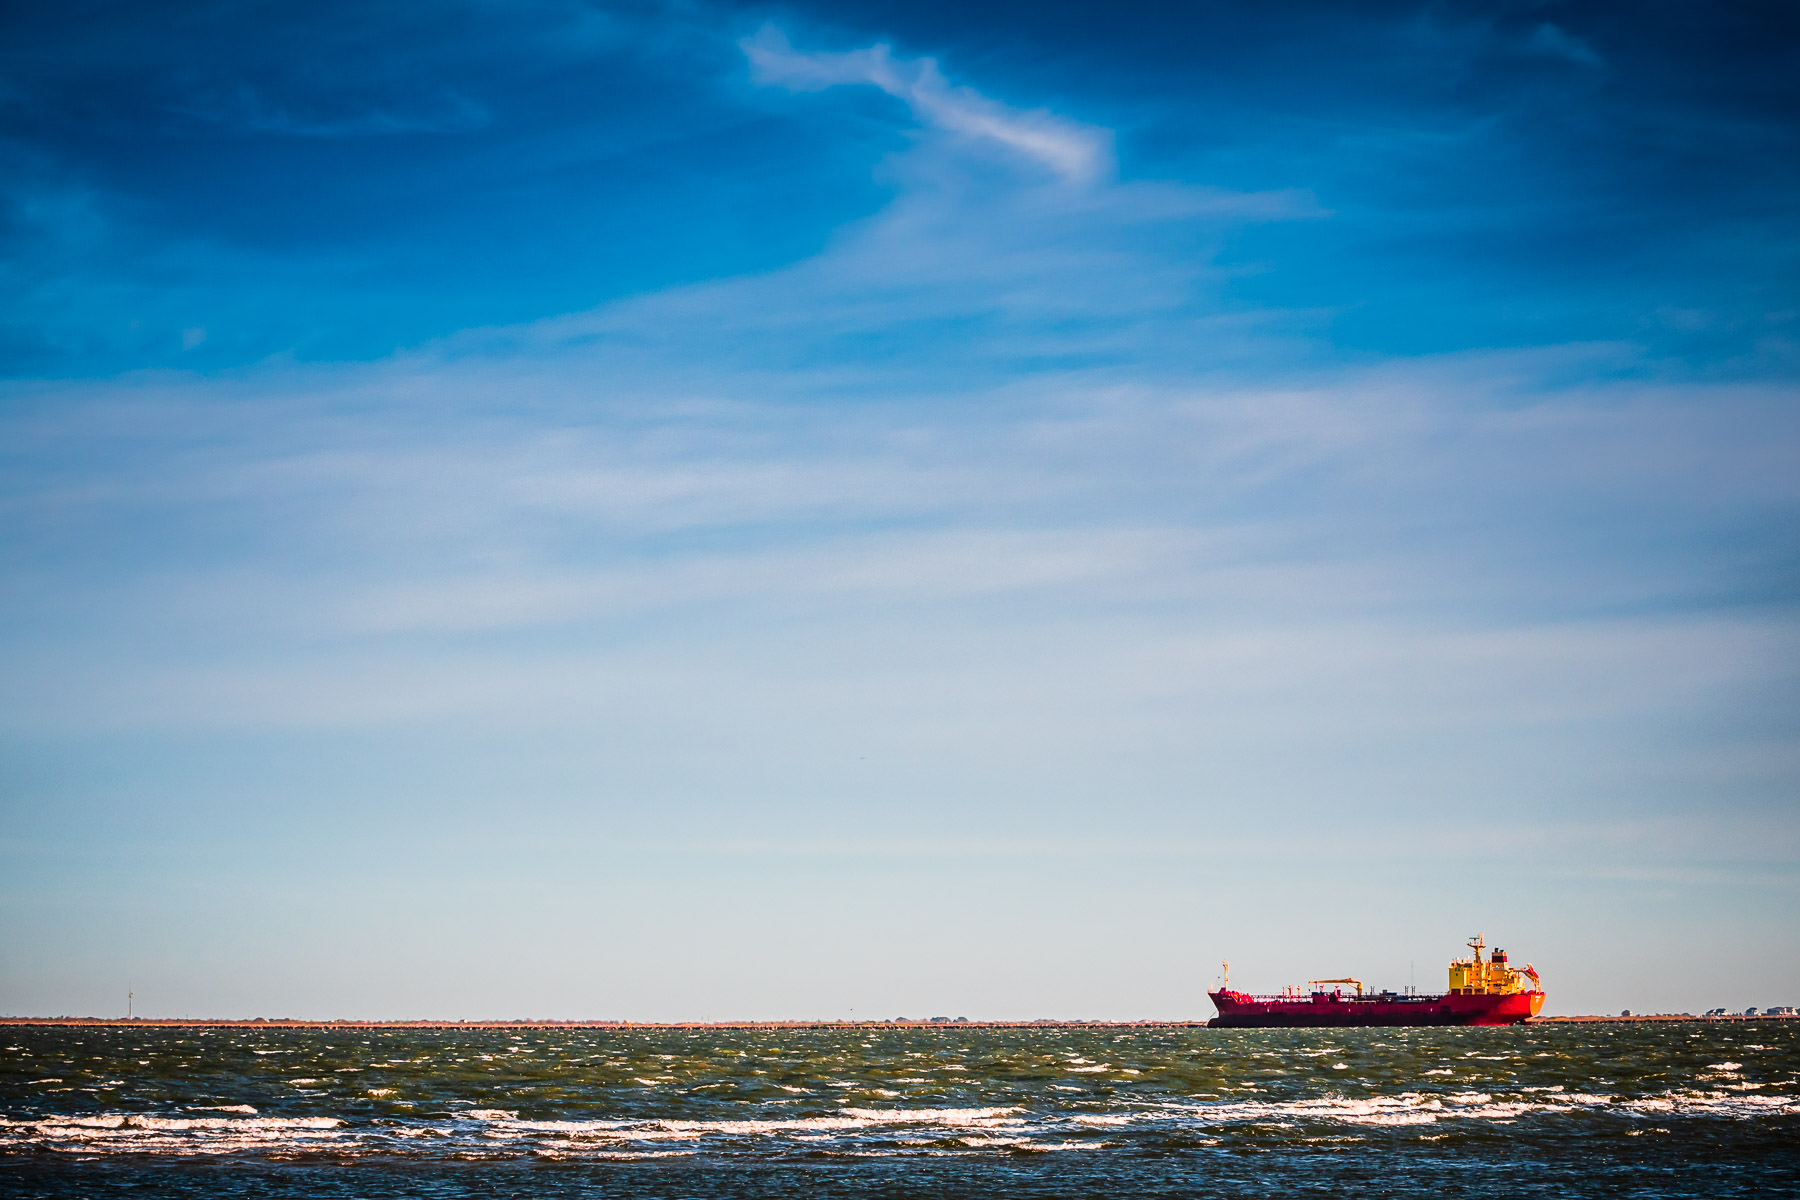 The chemical tanker Cape Daly transits Bolivar Roads off the eastern tip of Galveston Island, Texas.